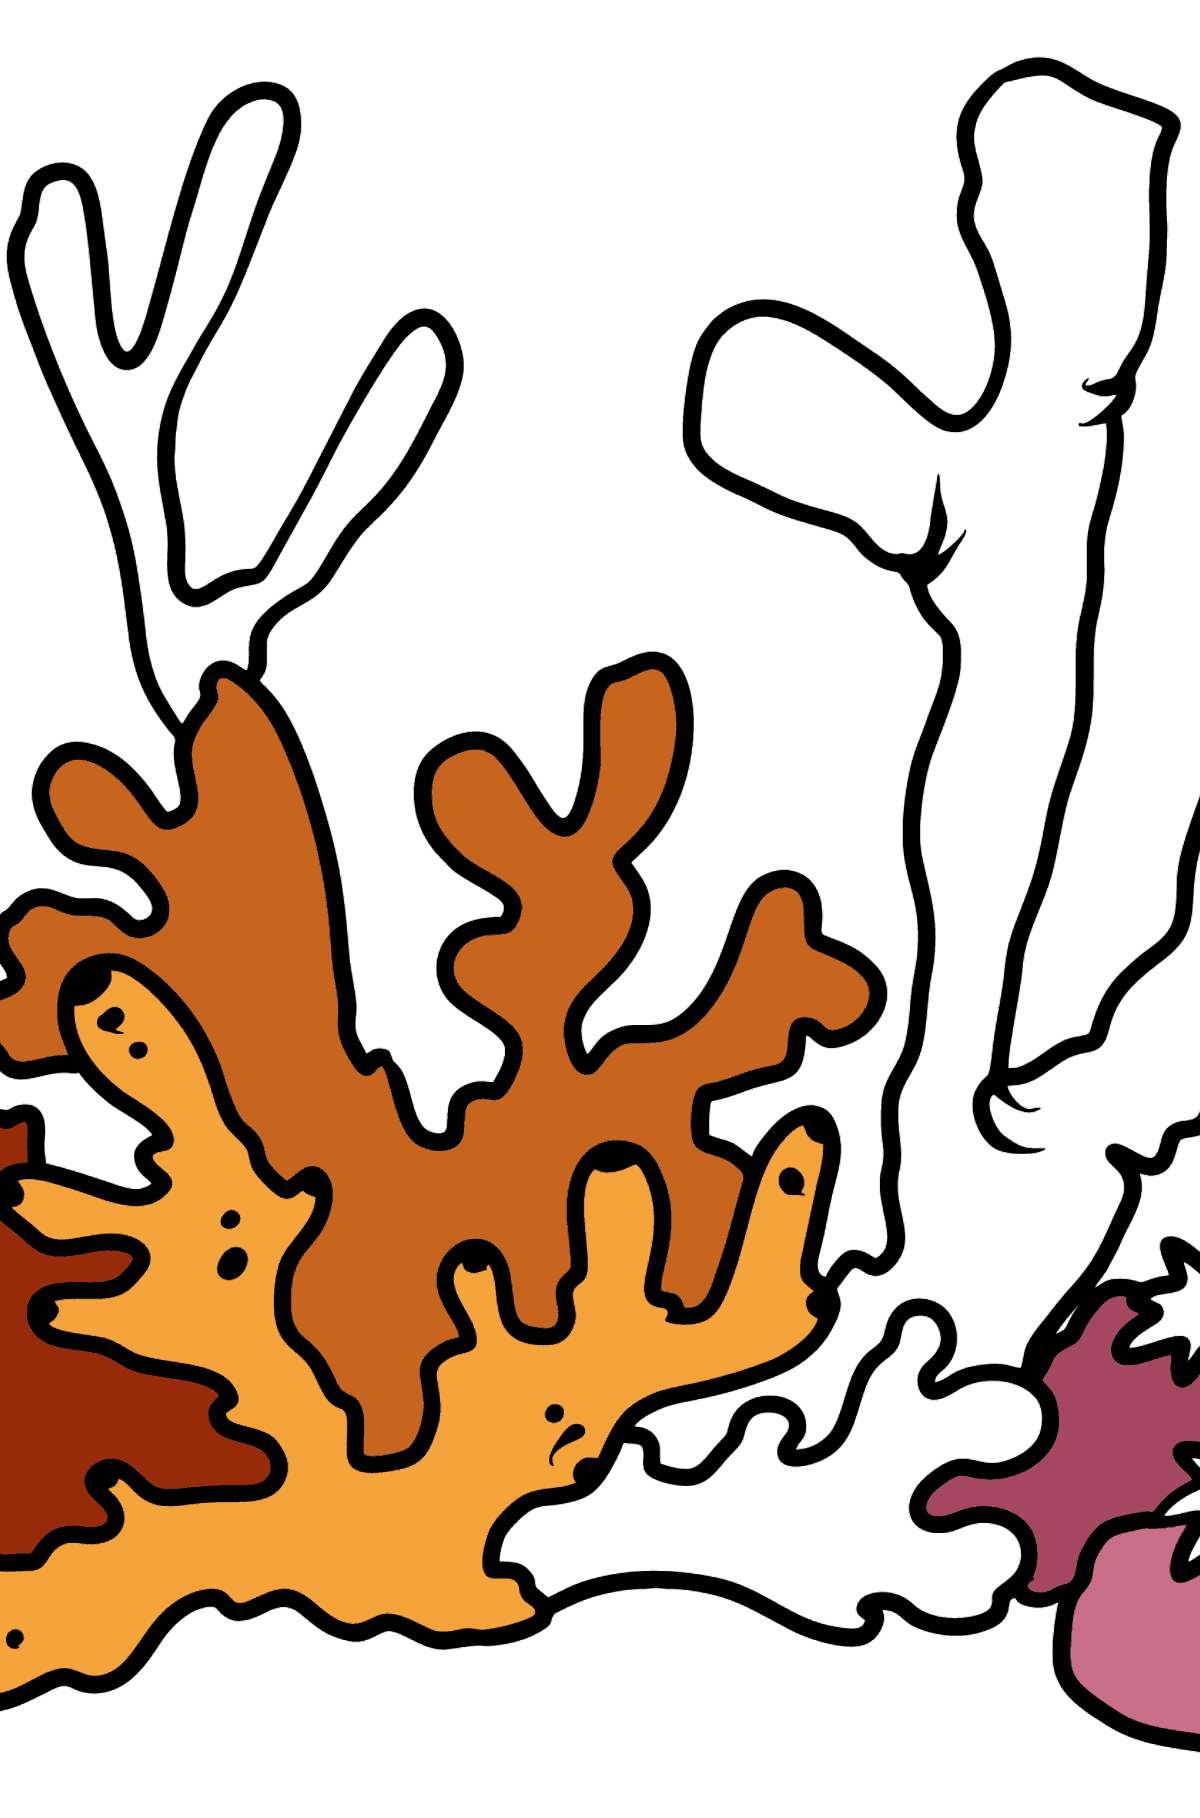 Coral coloring page - Coloring Pages for Kids